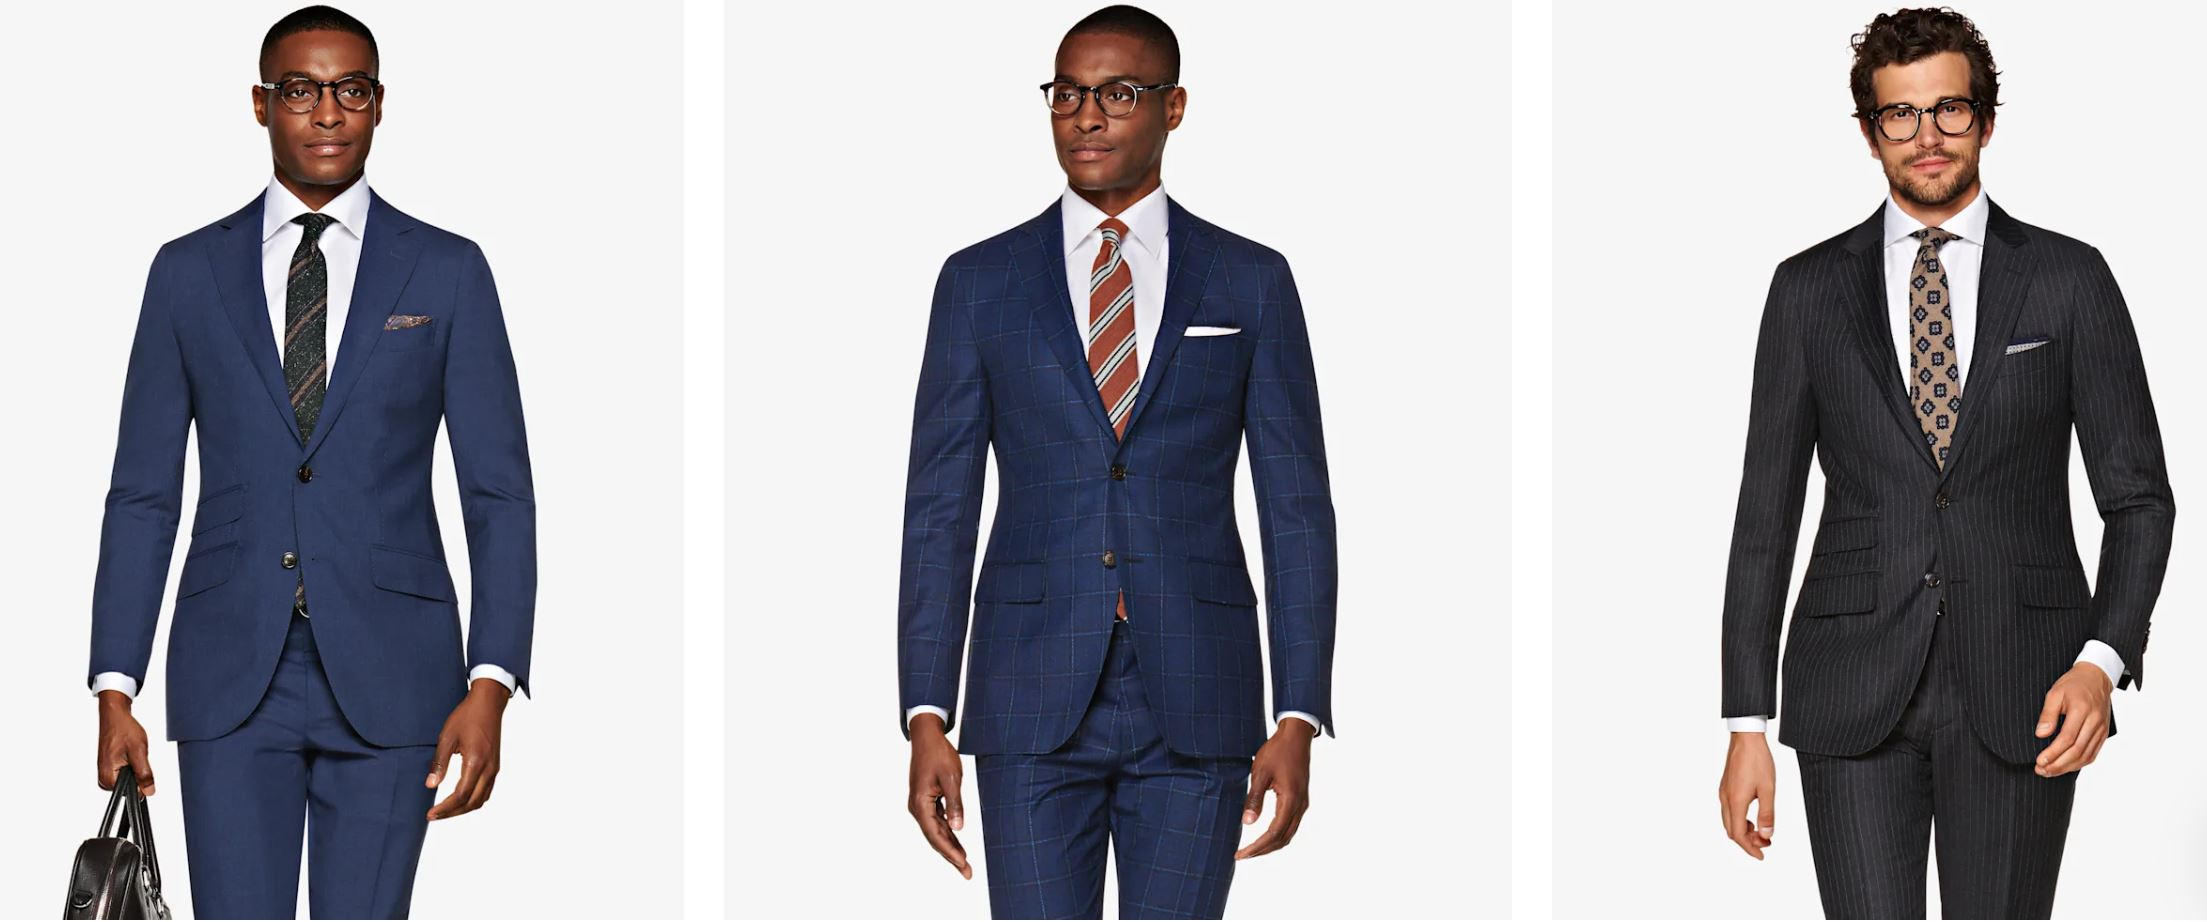 Suitsupply Suit Fits - The Sienna is a crowd favorite